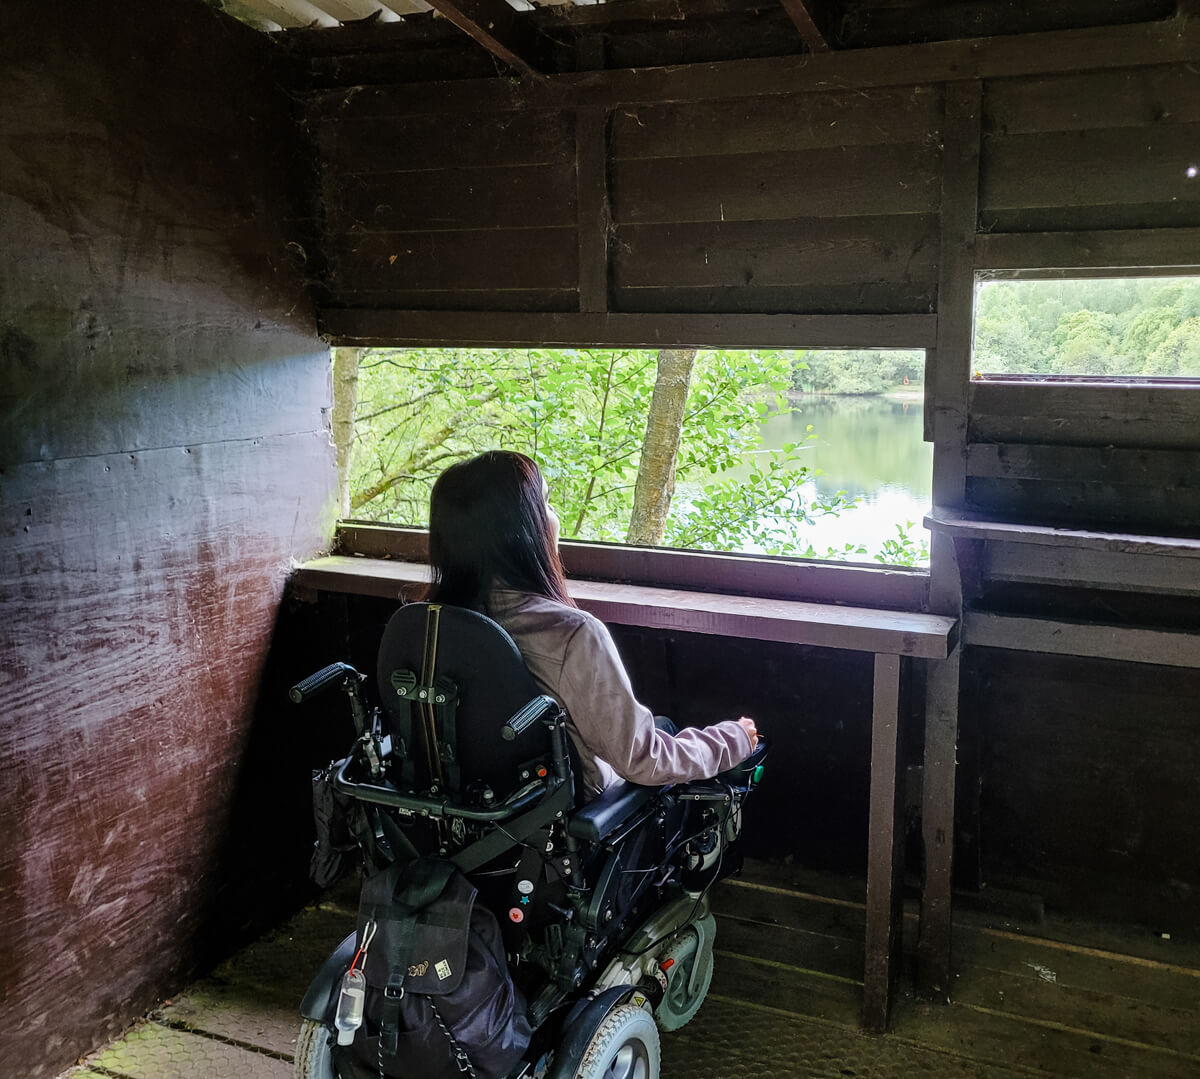 Emma sitting inside the bird lookout hide. She is looking out across the pond. Emma has her back to the camera.